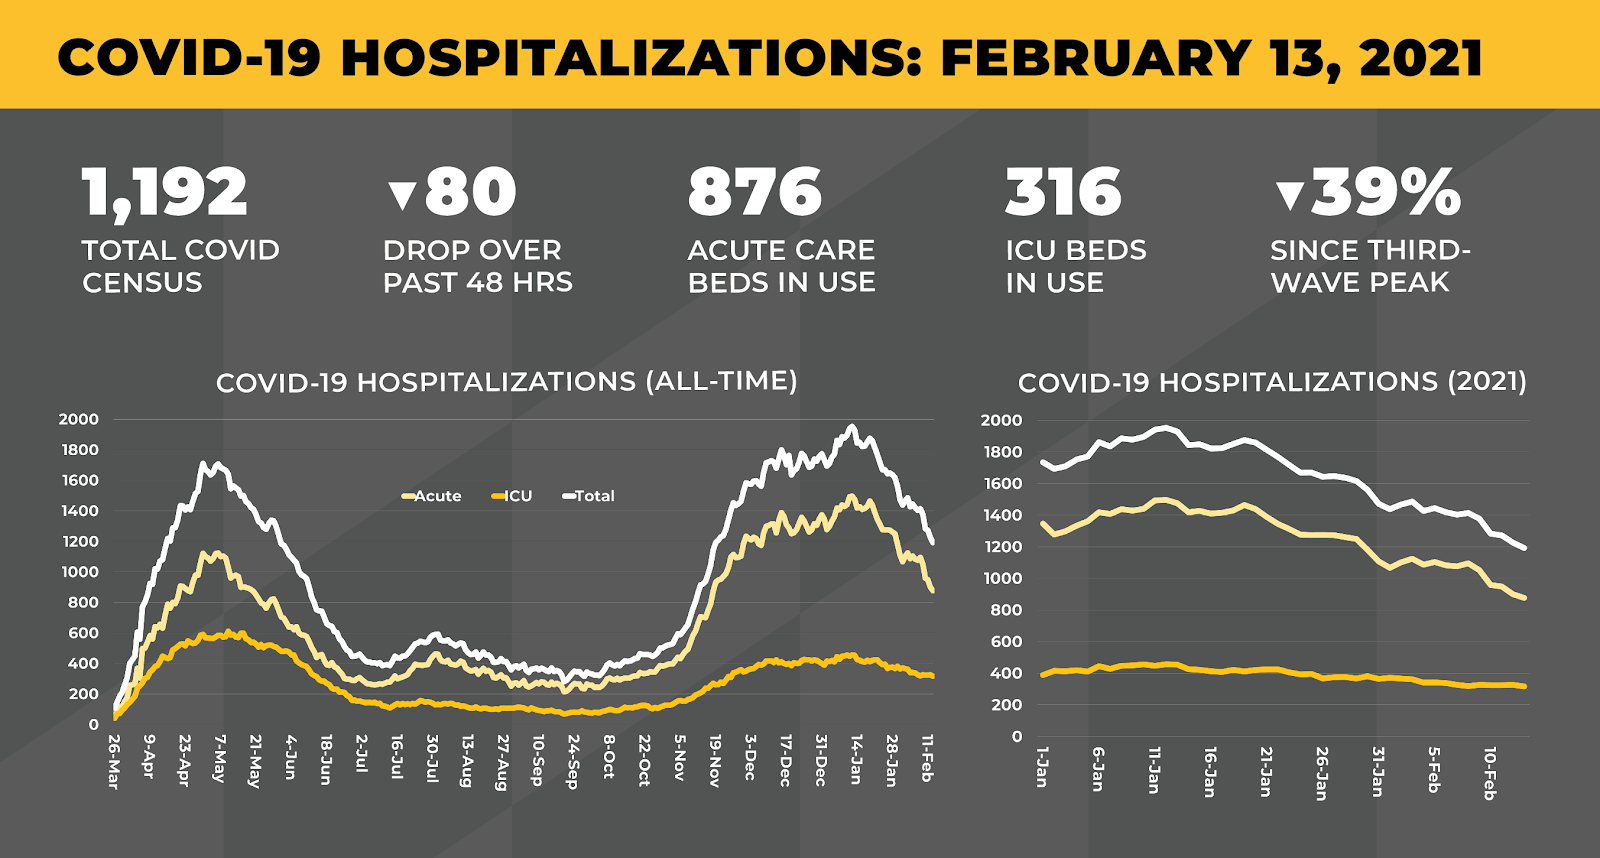 Infographic showing hospitalization statistics for Maryland, including 1,192 total beds in use and a 39% decline since the third-wave peak.